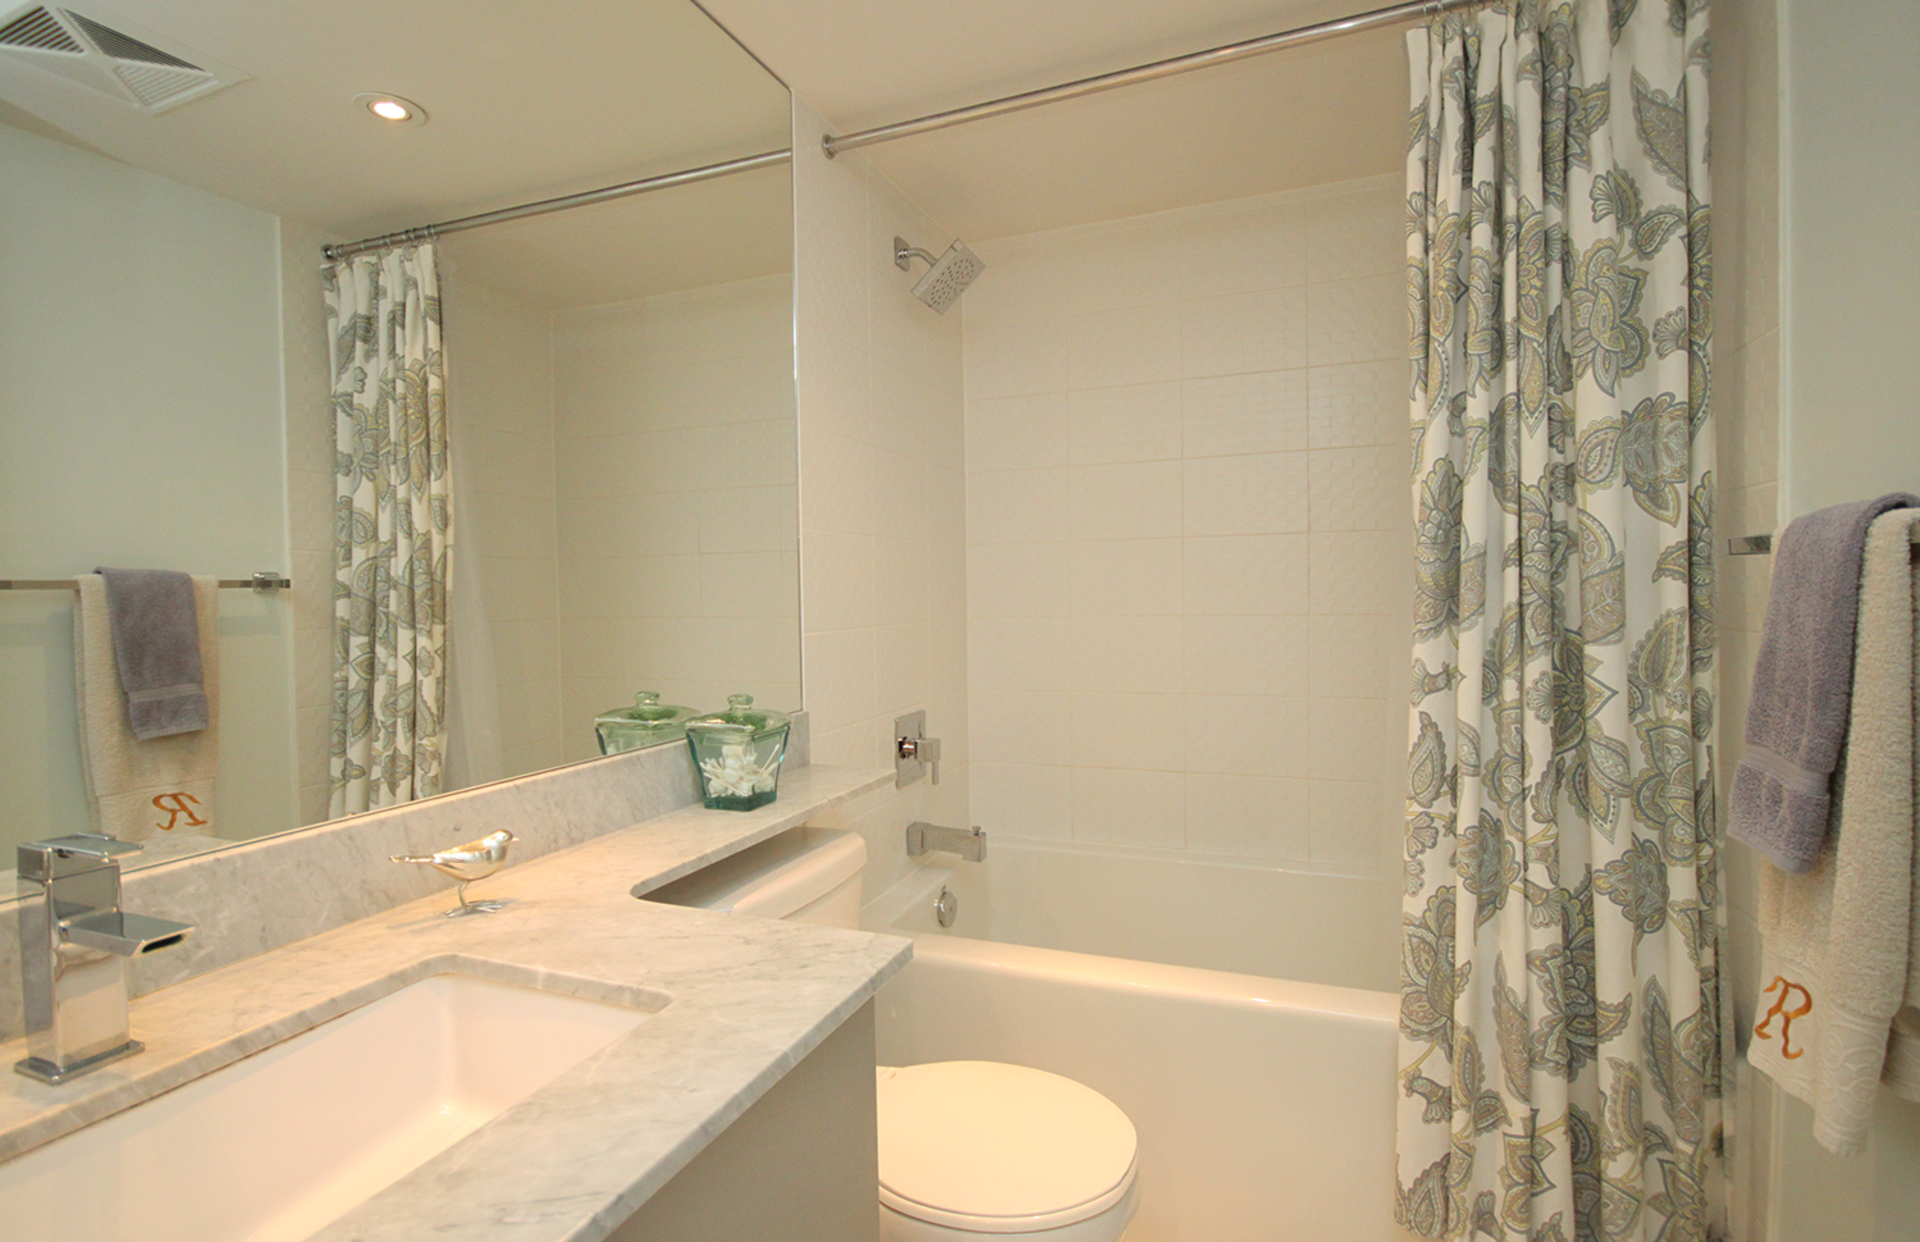 4 Piece Bathroom at 421 - 75 East Liberty Street, Niagara, Toronto